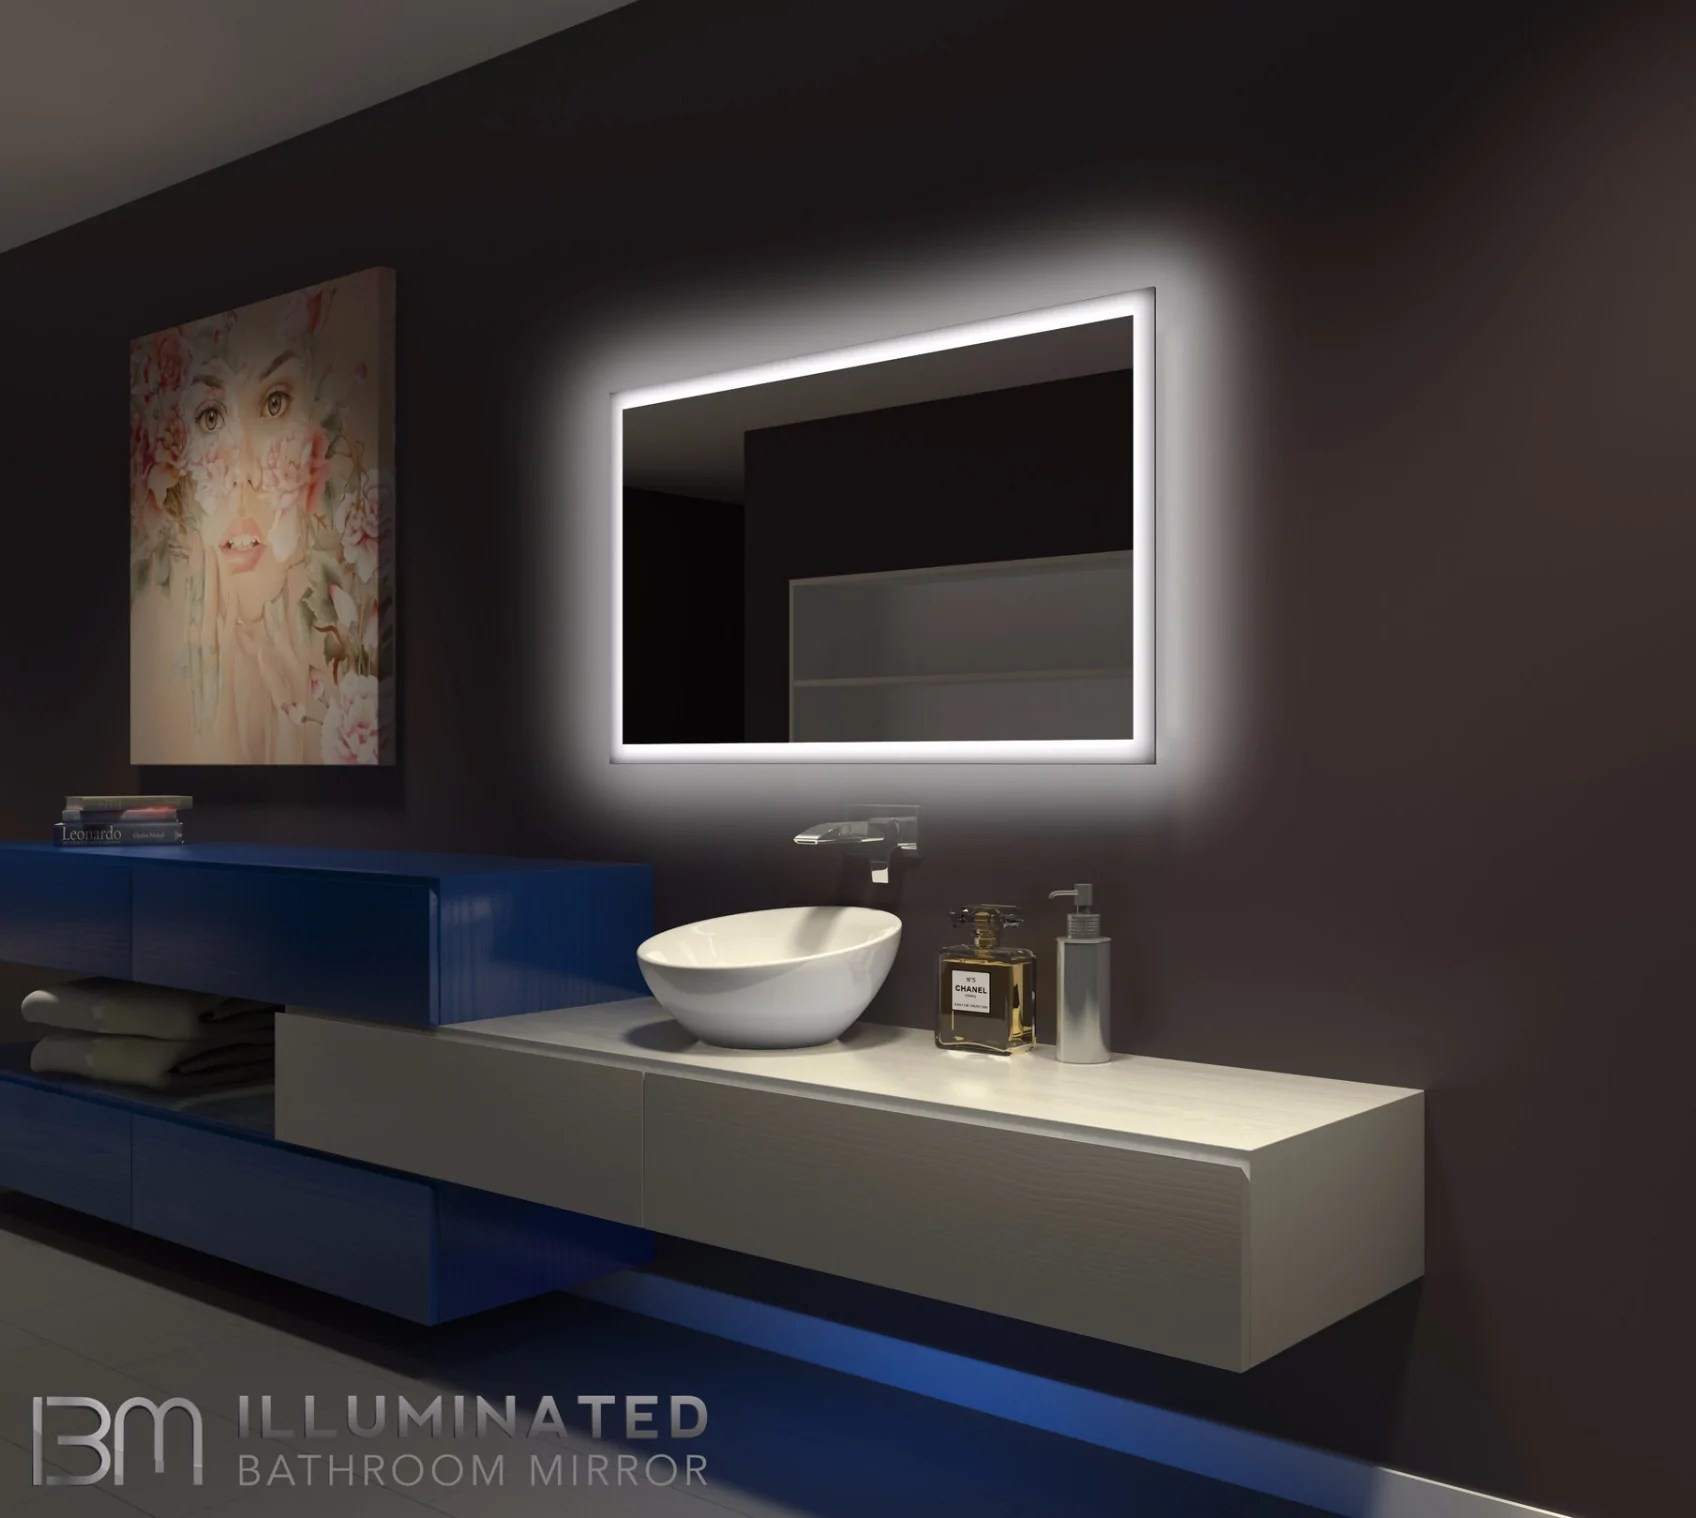 Wiring Lamp To Wall Switch Free Download Wiring Diagrams Pictures